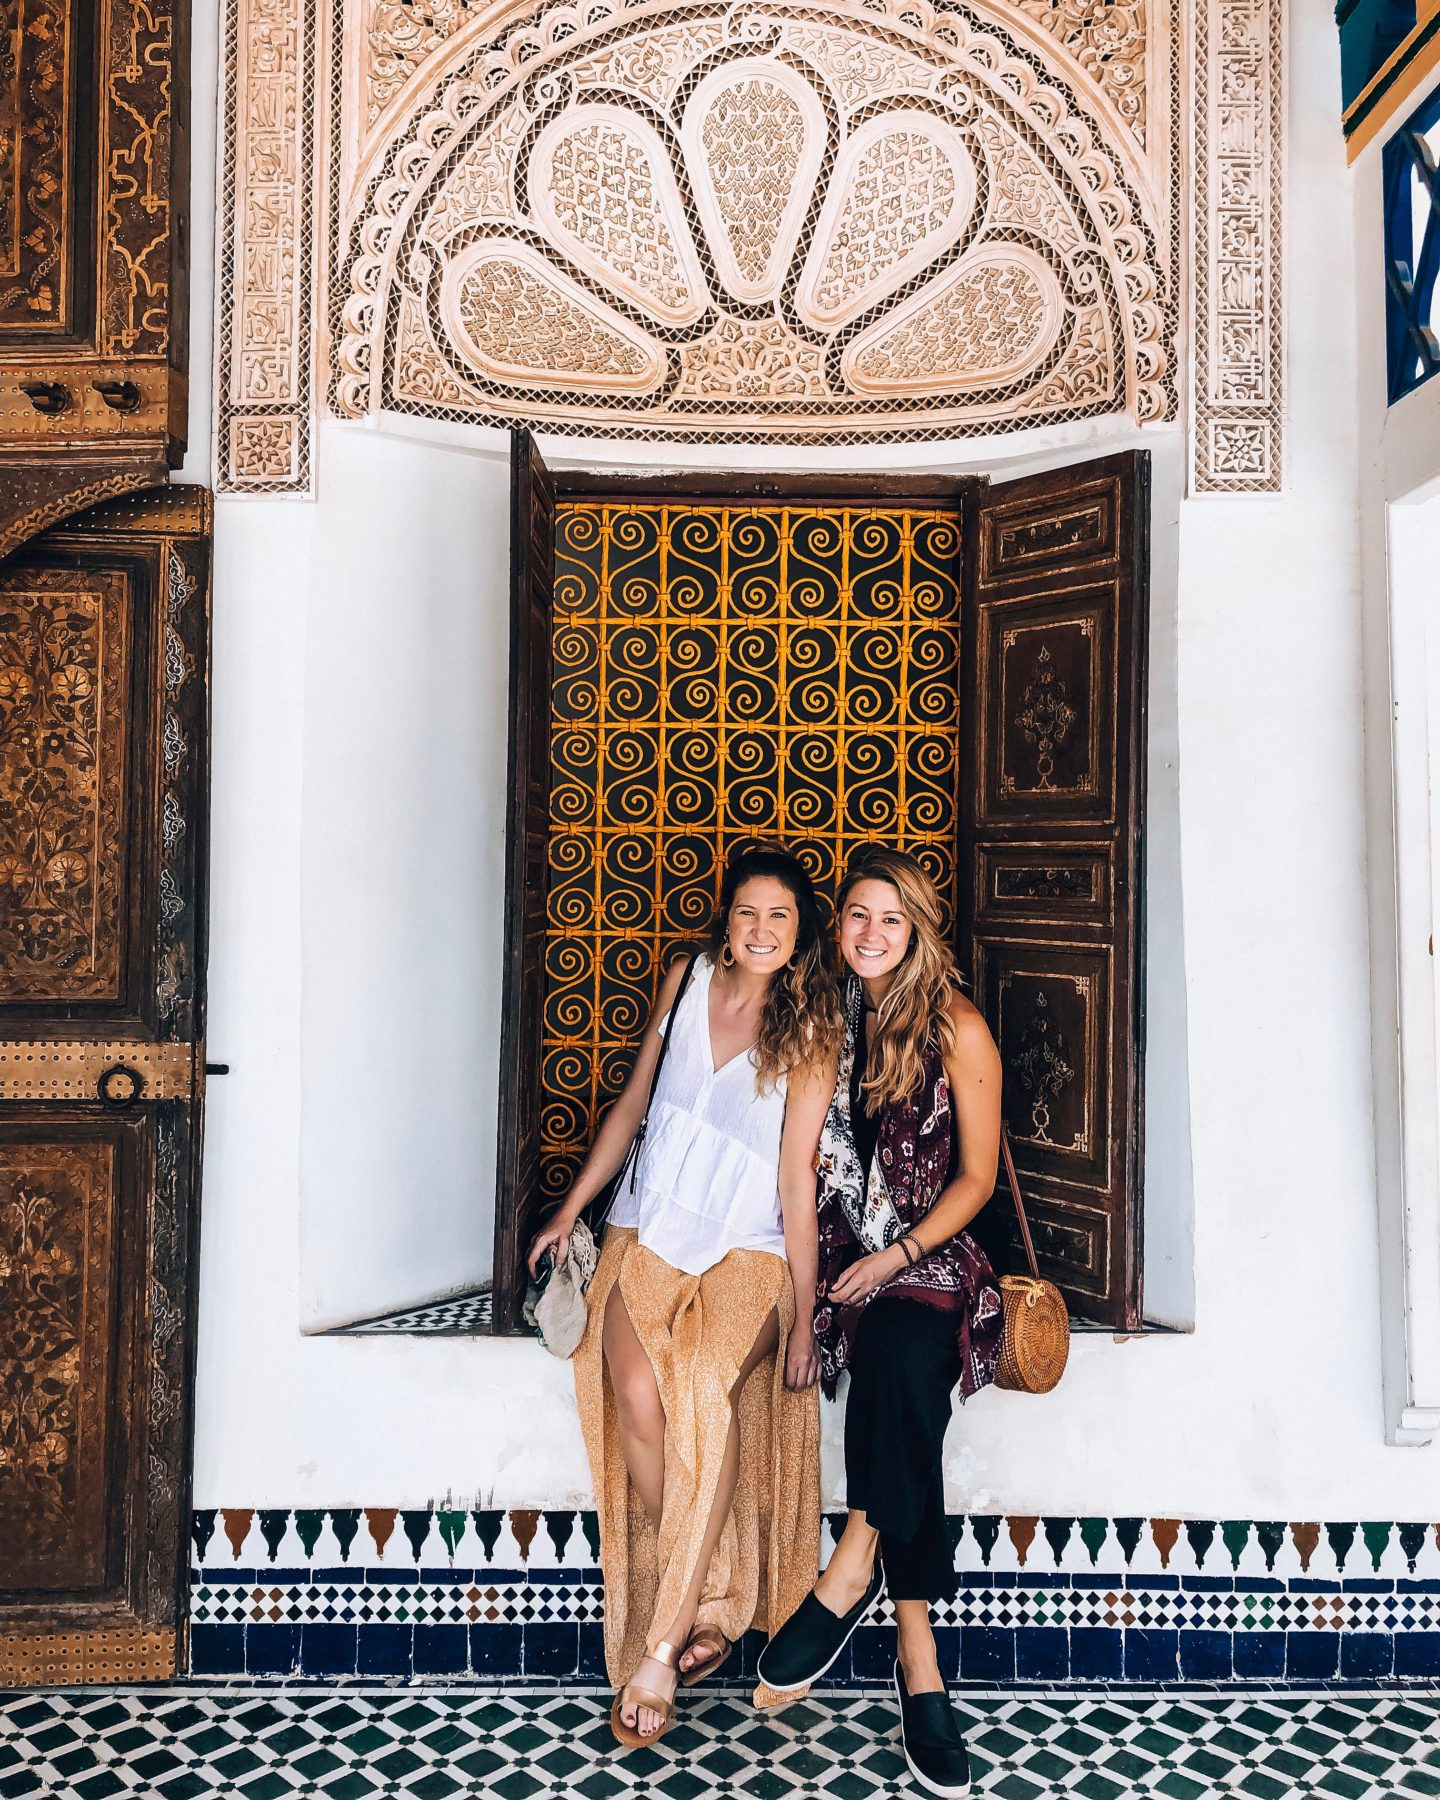 From Atlanta to Morocco, exploring all there is to see in Morocco as we sat in Bahia Palace.